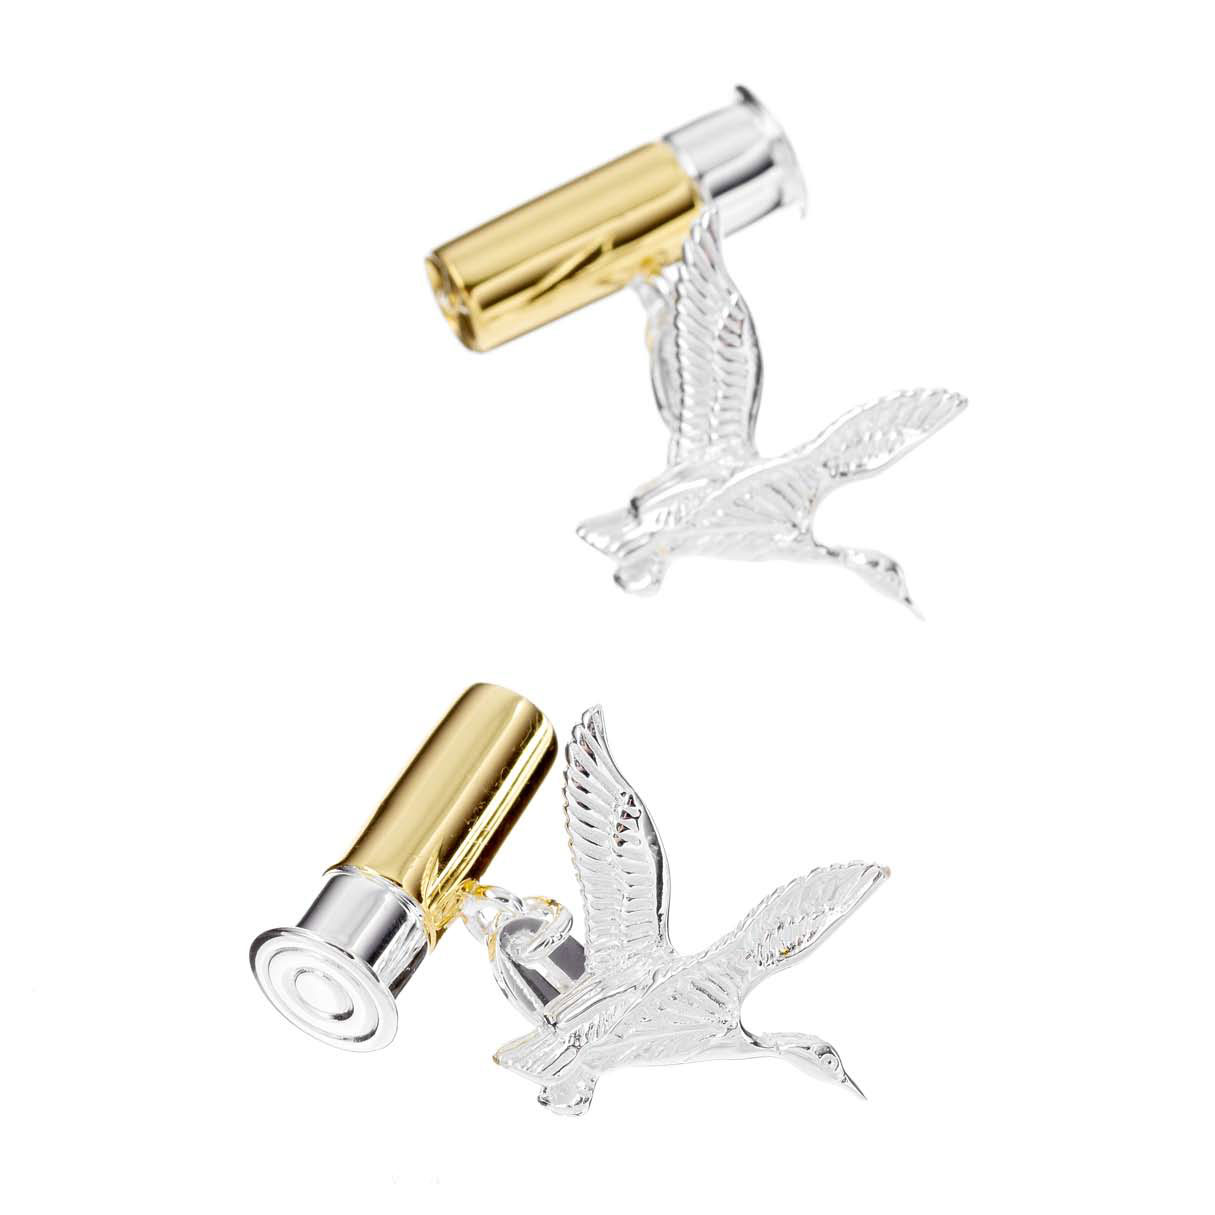 Flying Duck and Gun Cartridge Cufflinks in Gunmetal and Gilt